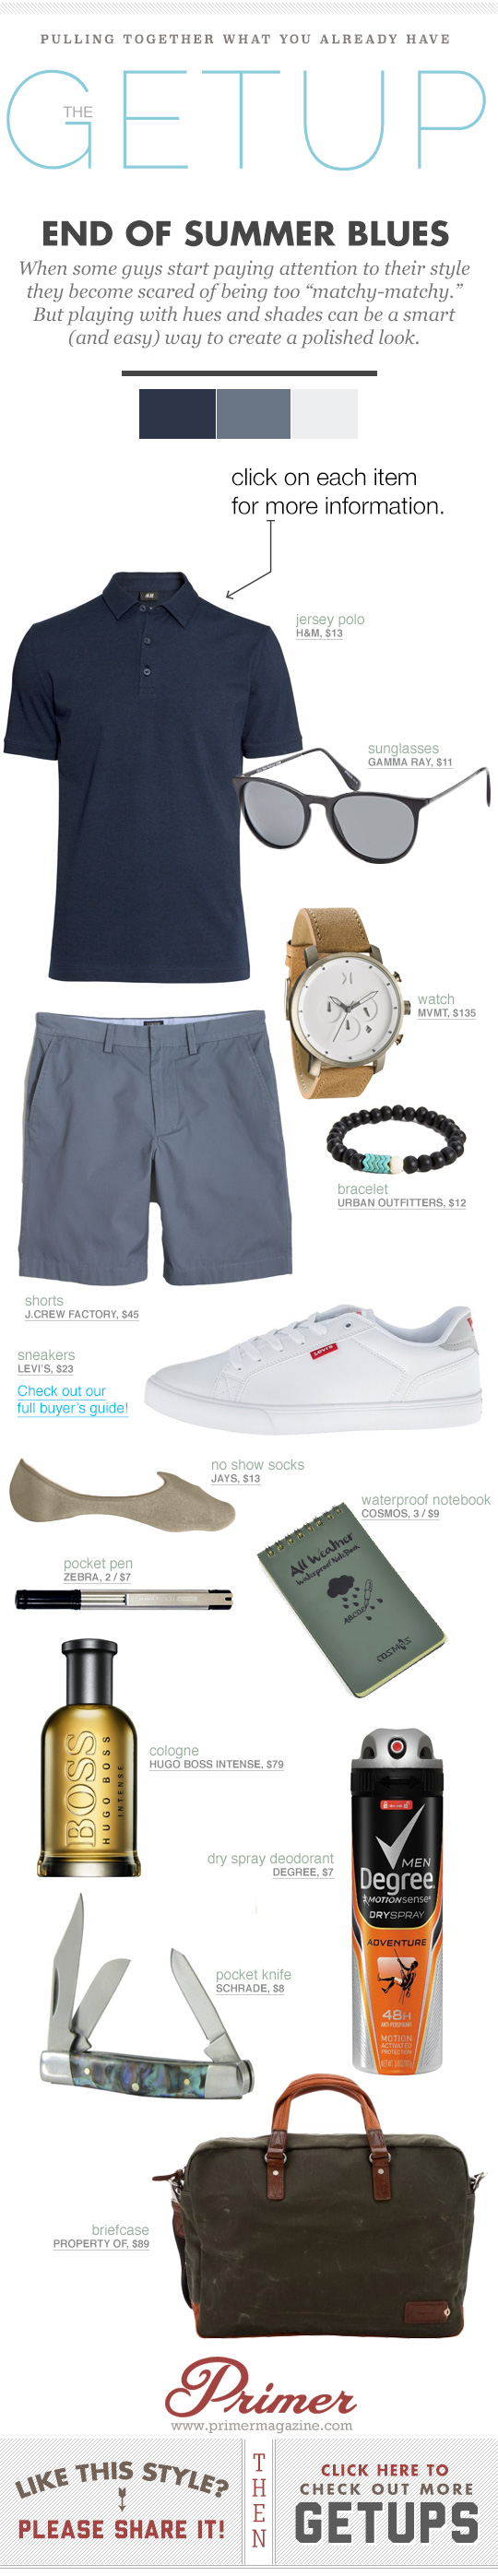 End of Summer Blues Getup - Polo and shorts with white sneakers outfit idea